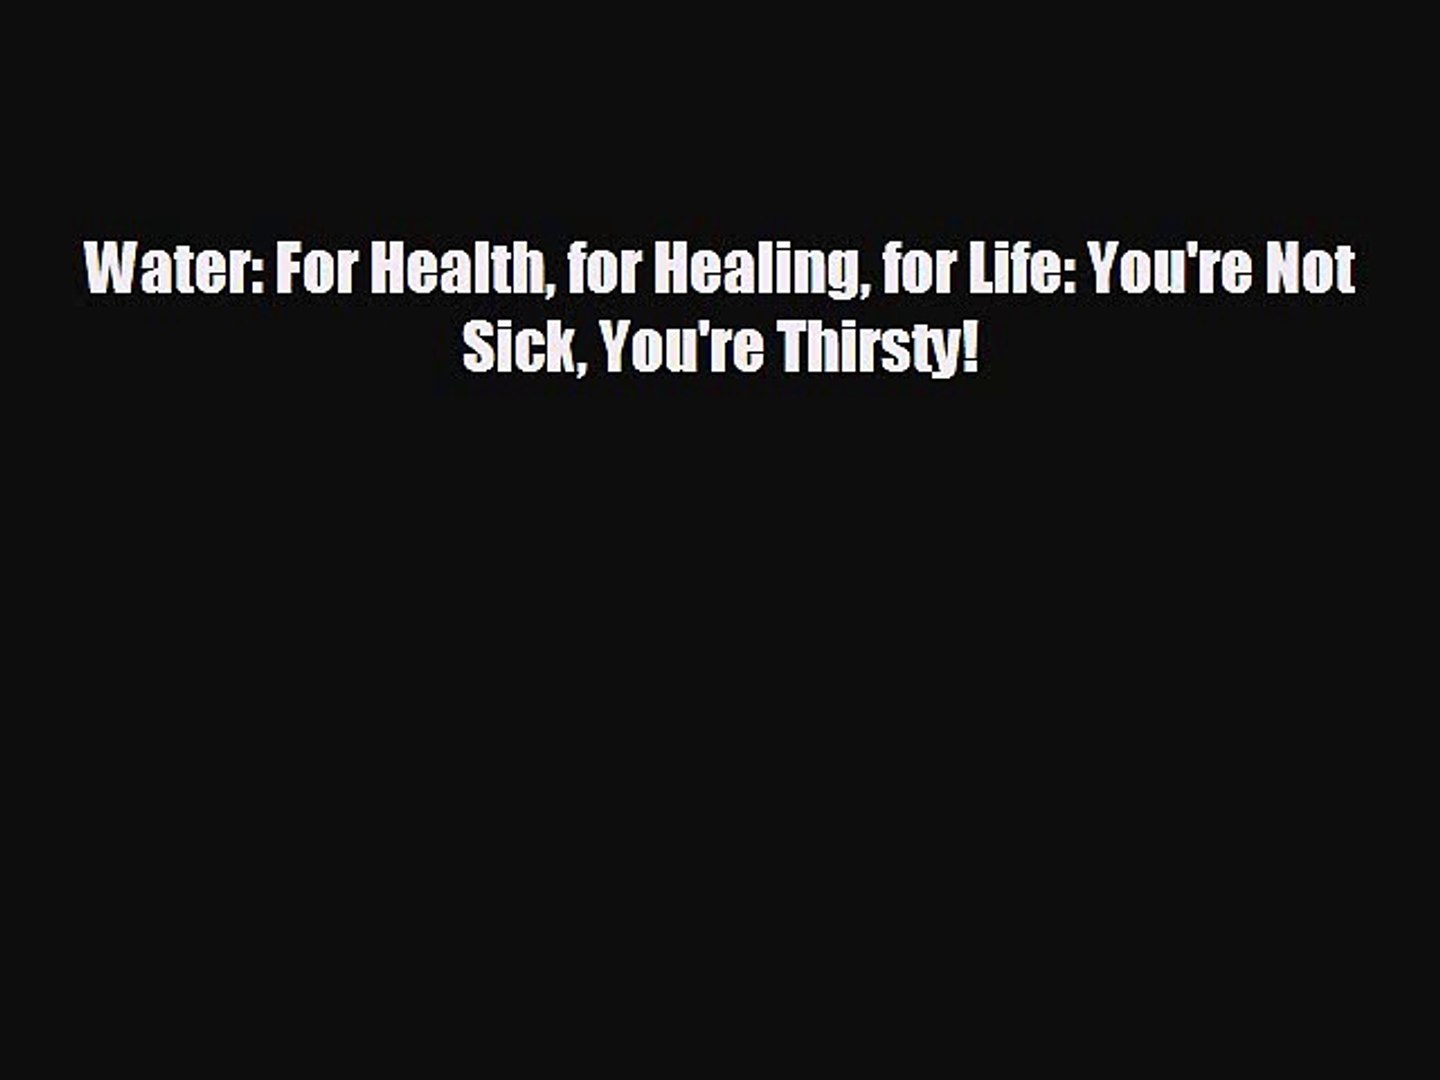 behold Water: For Health for Healing for Life: You're Not Sick You're Thirsty!